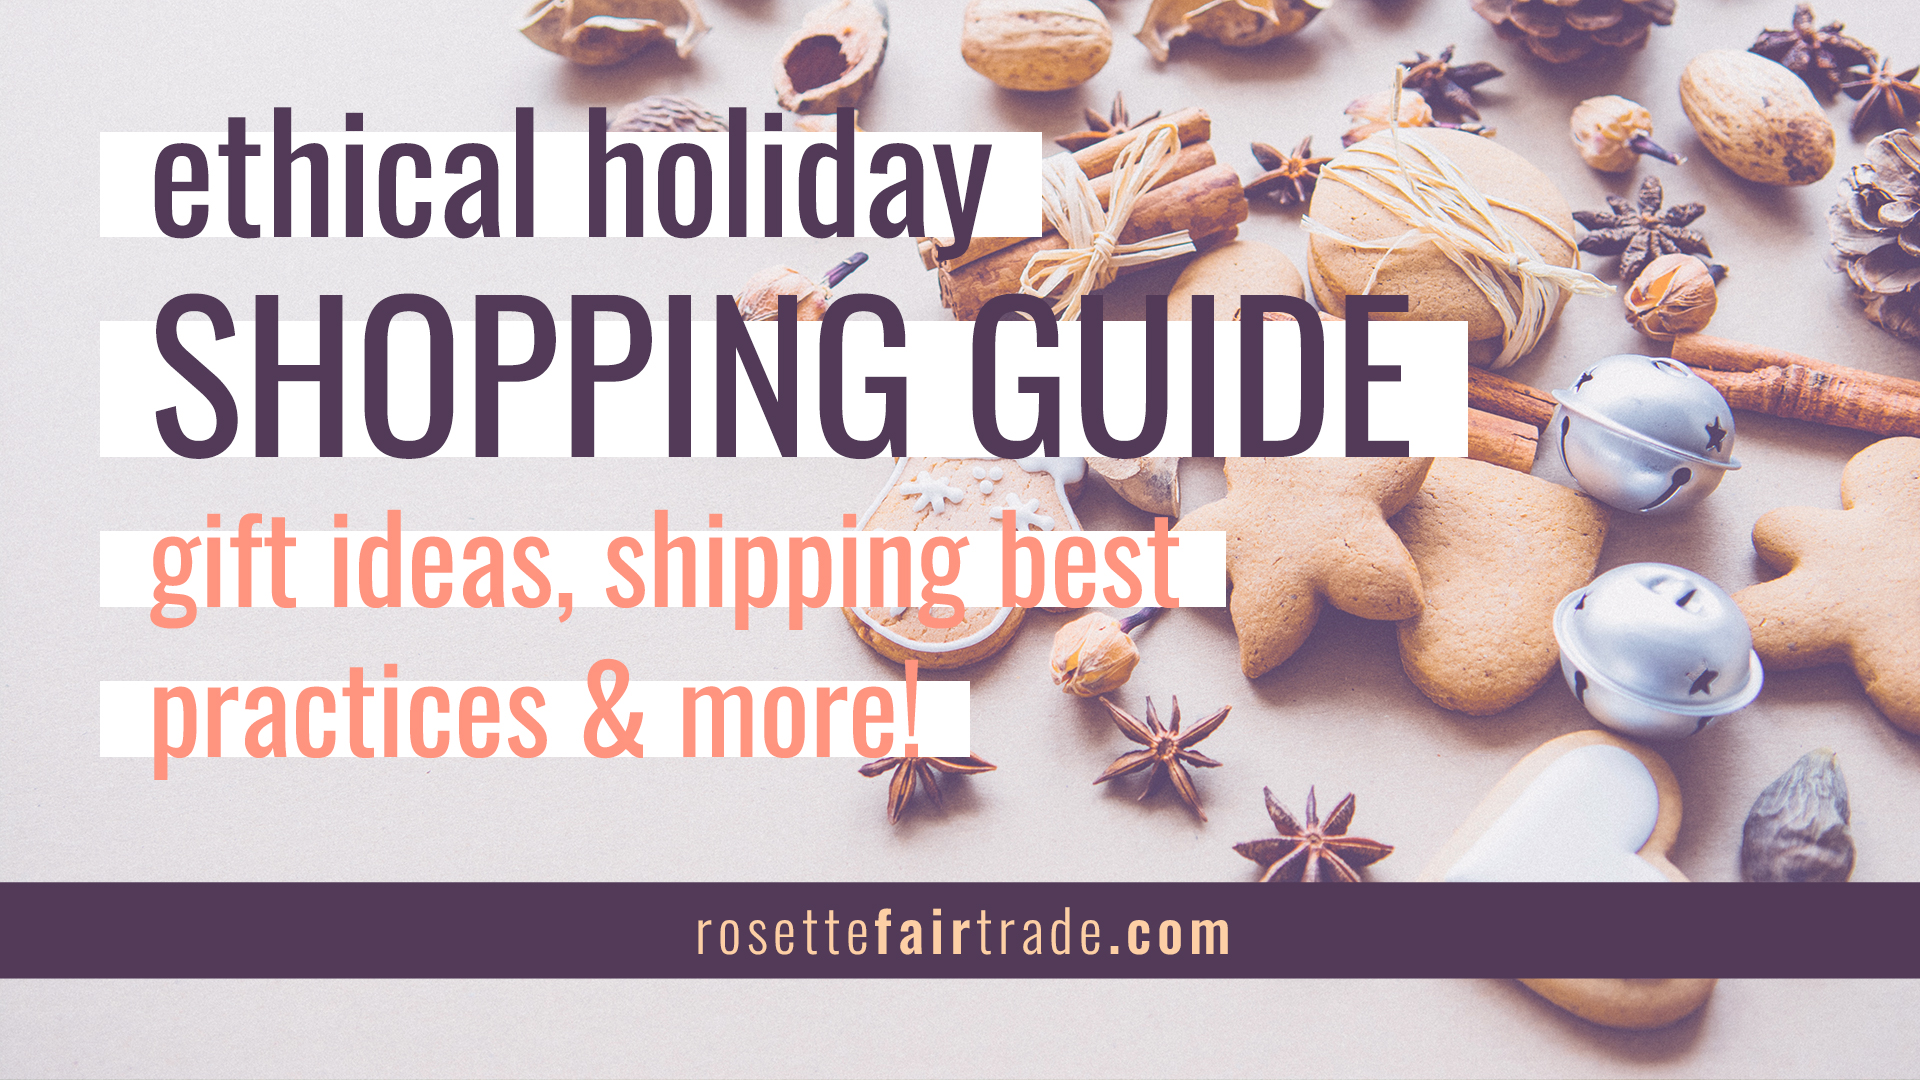 Ethical holiday shopping guide - gift ideas, shipping best practices and more on Rosette Fair Trade